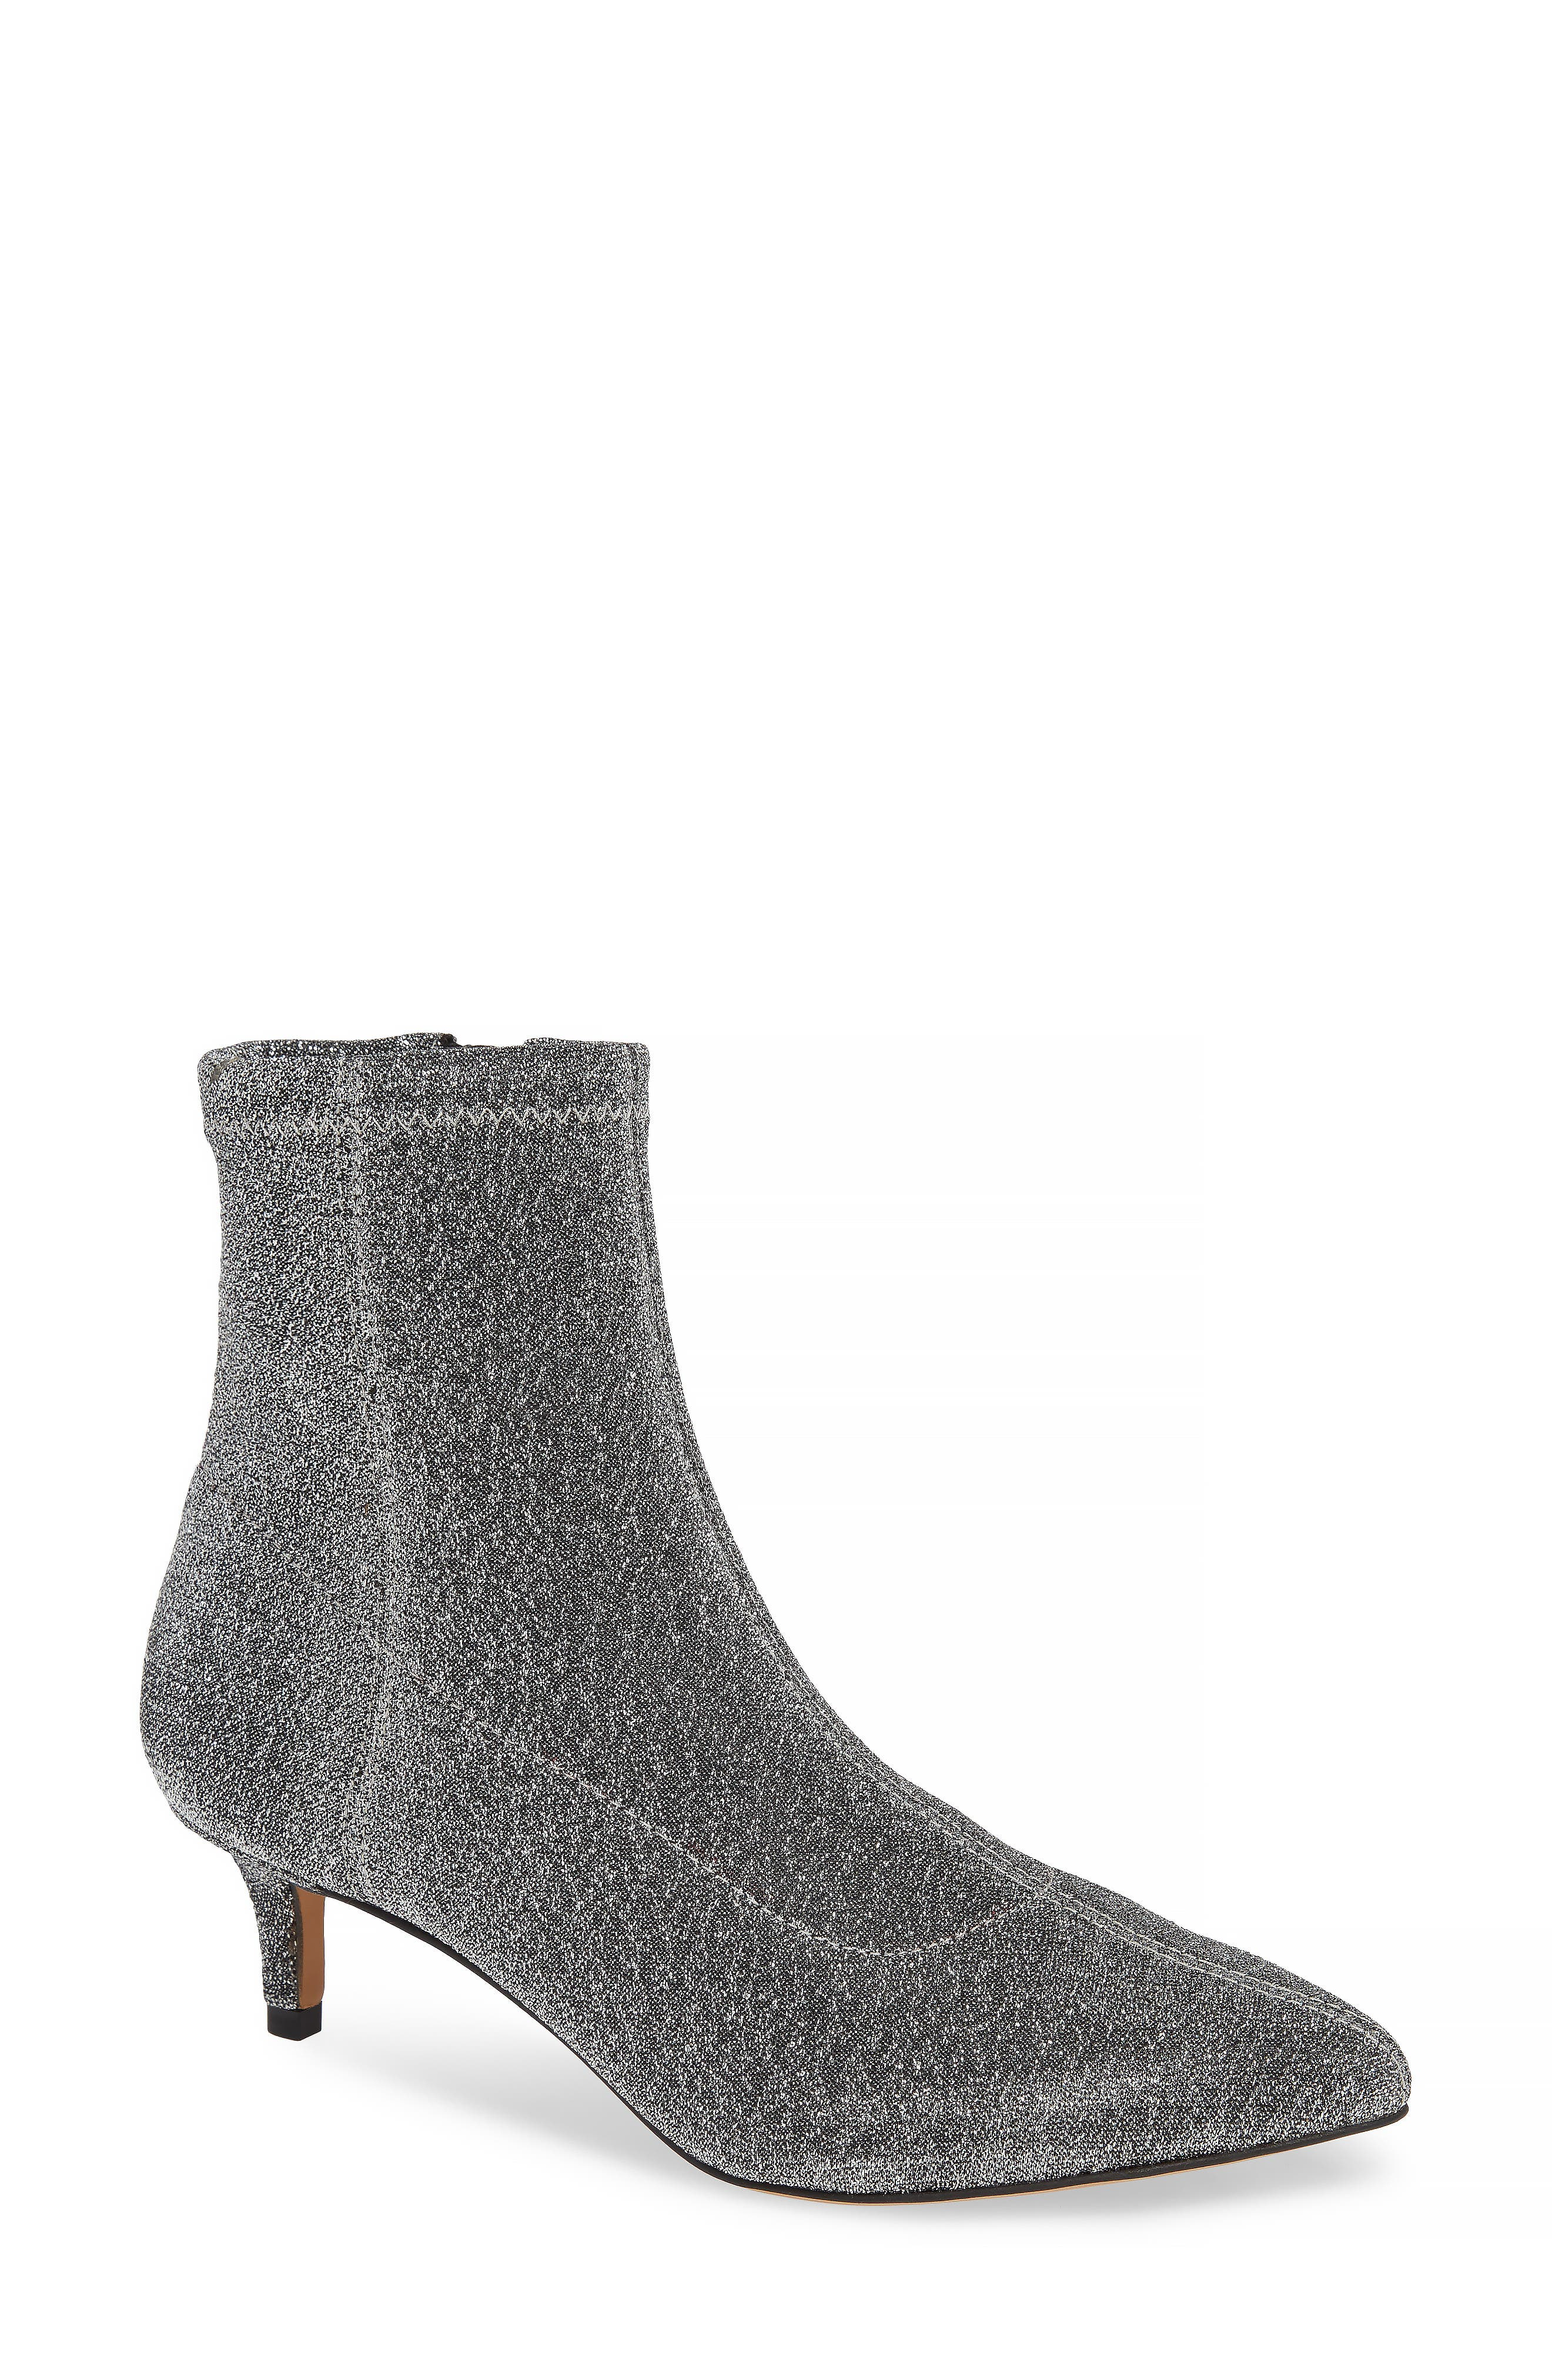 Sayres Bootie,                             Main thumbnail 1, color,                             SILVER FABRIC